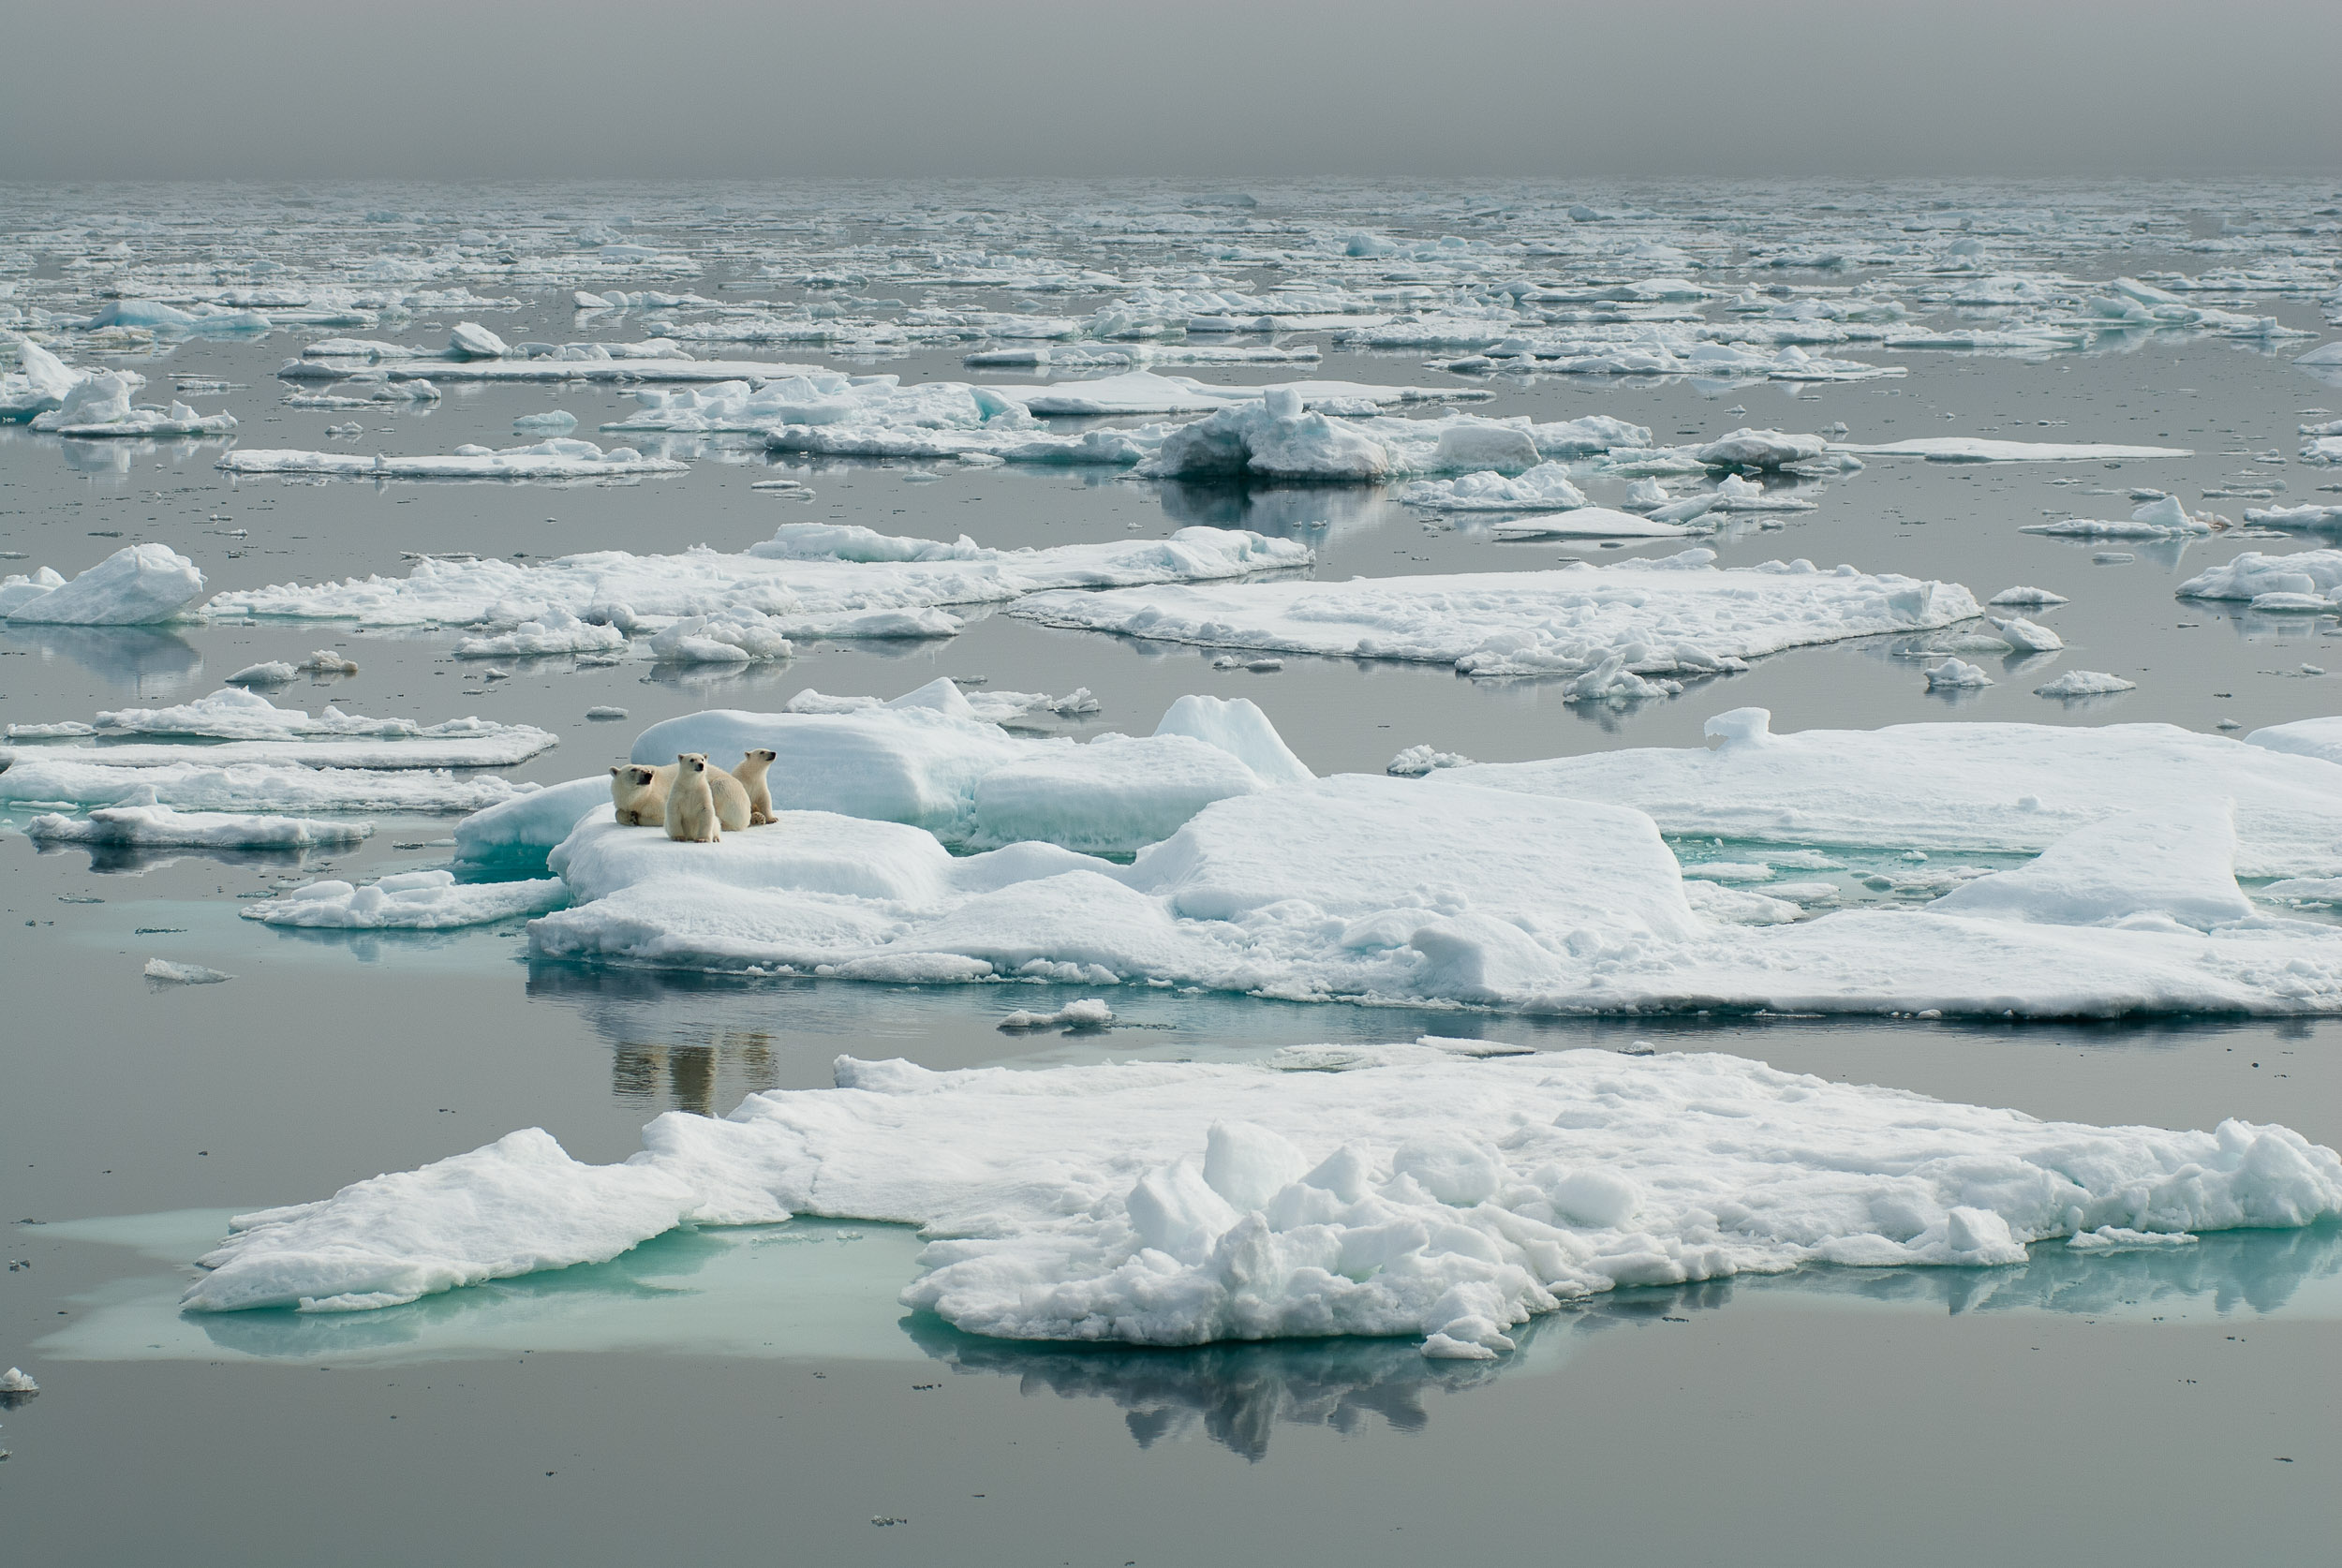 Polar bear and cubs, Svalbard (Norway). © www.thomaspickard.com